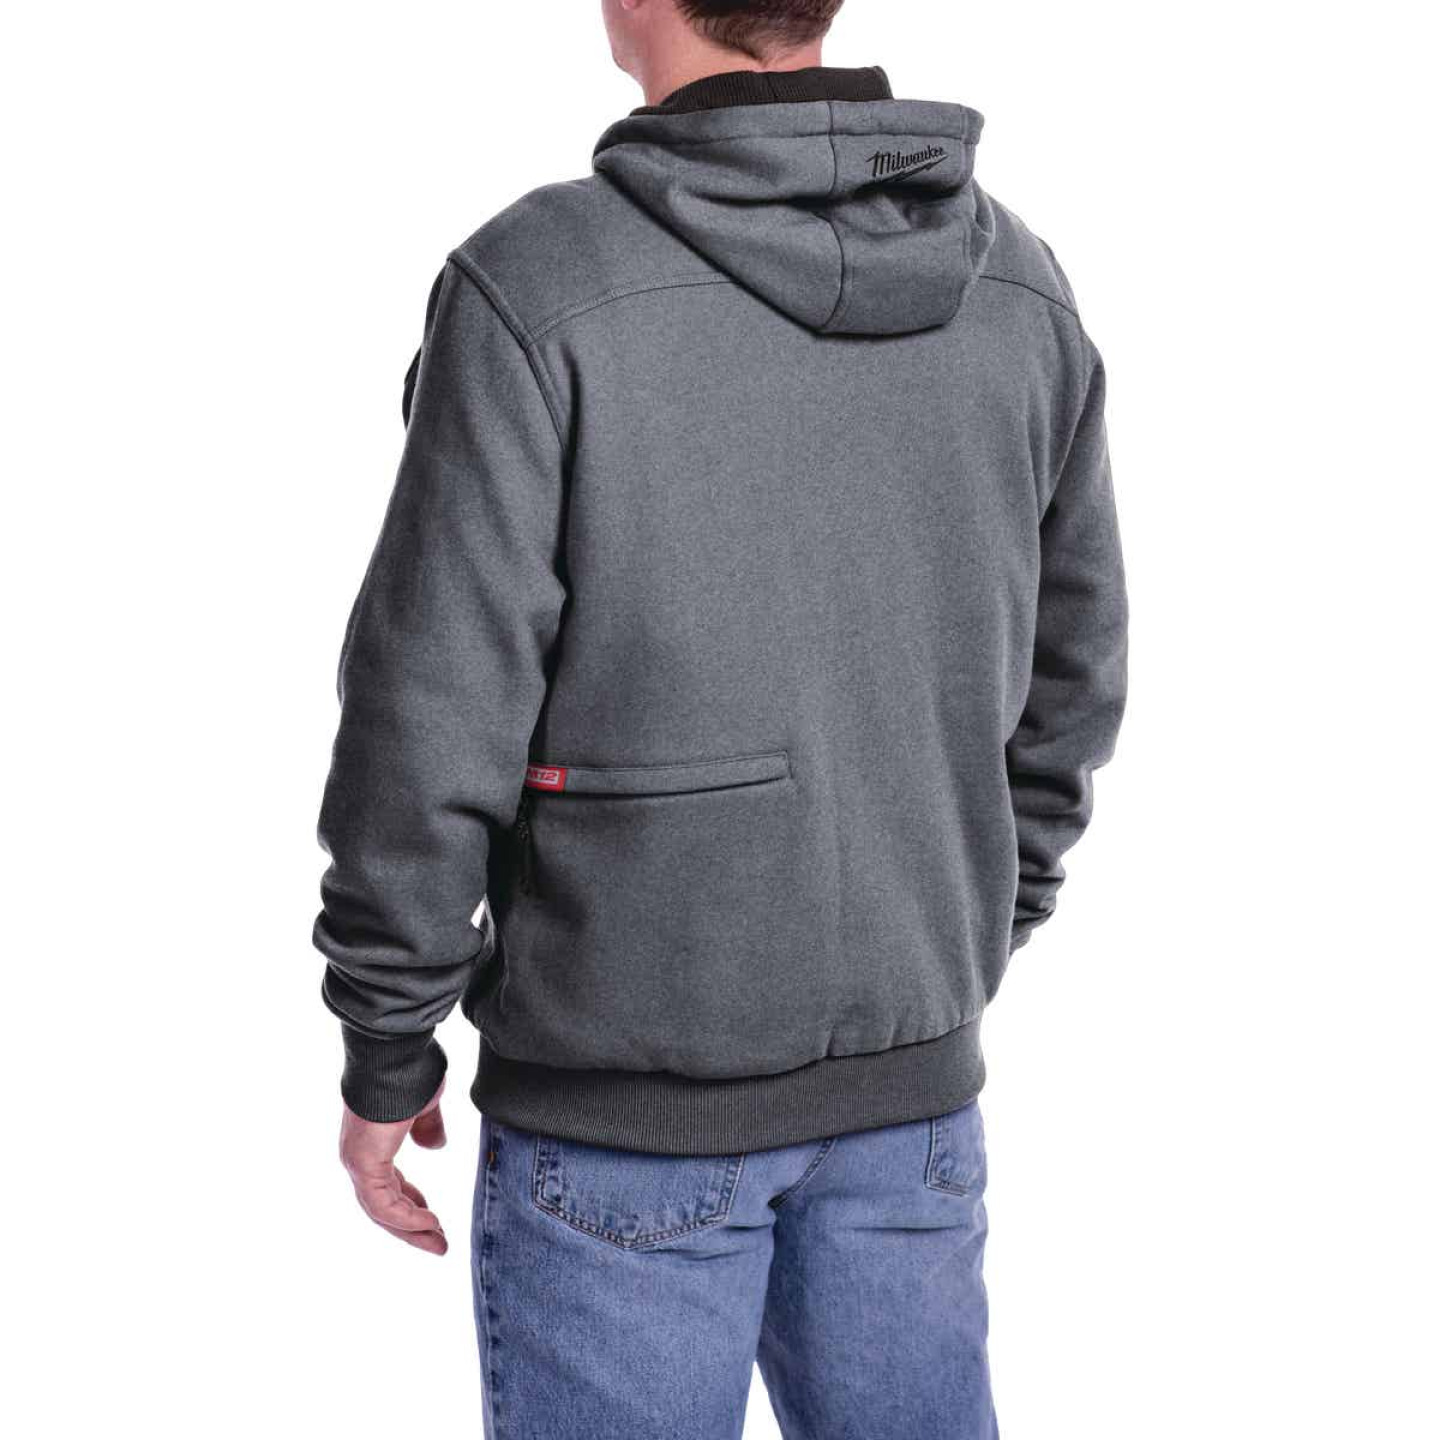 Milwaukee M12 XL Gray Men's Heated Full Zip Hooded Sweatshirt Image 9